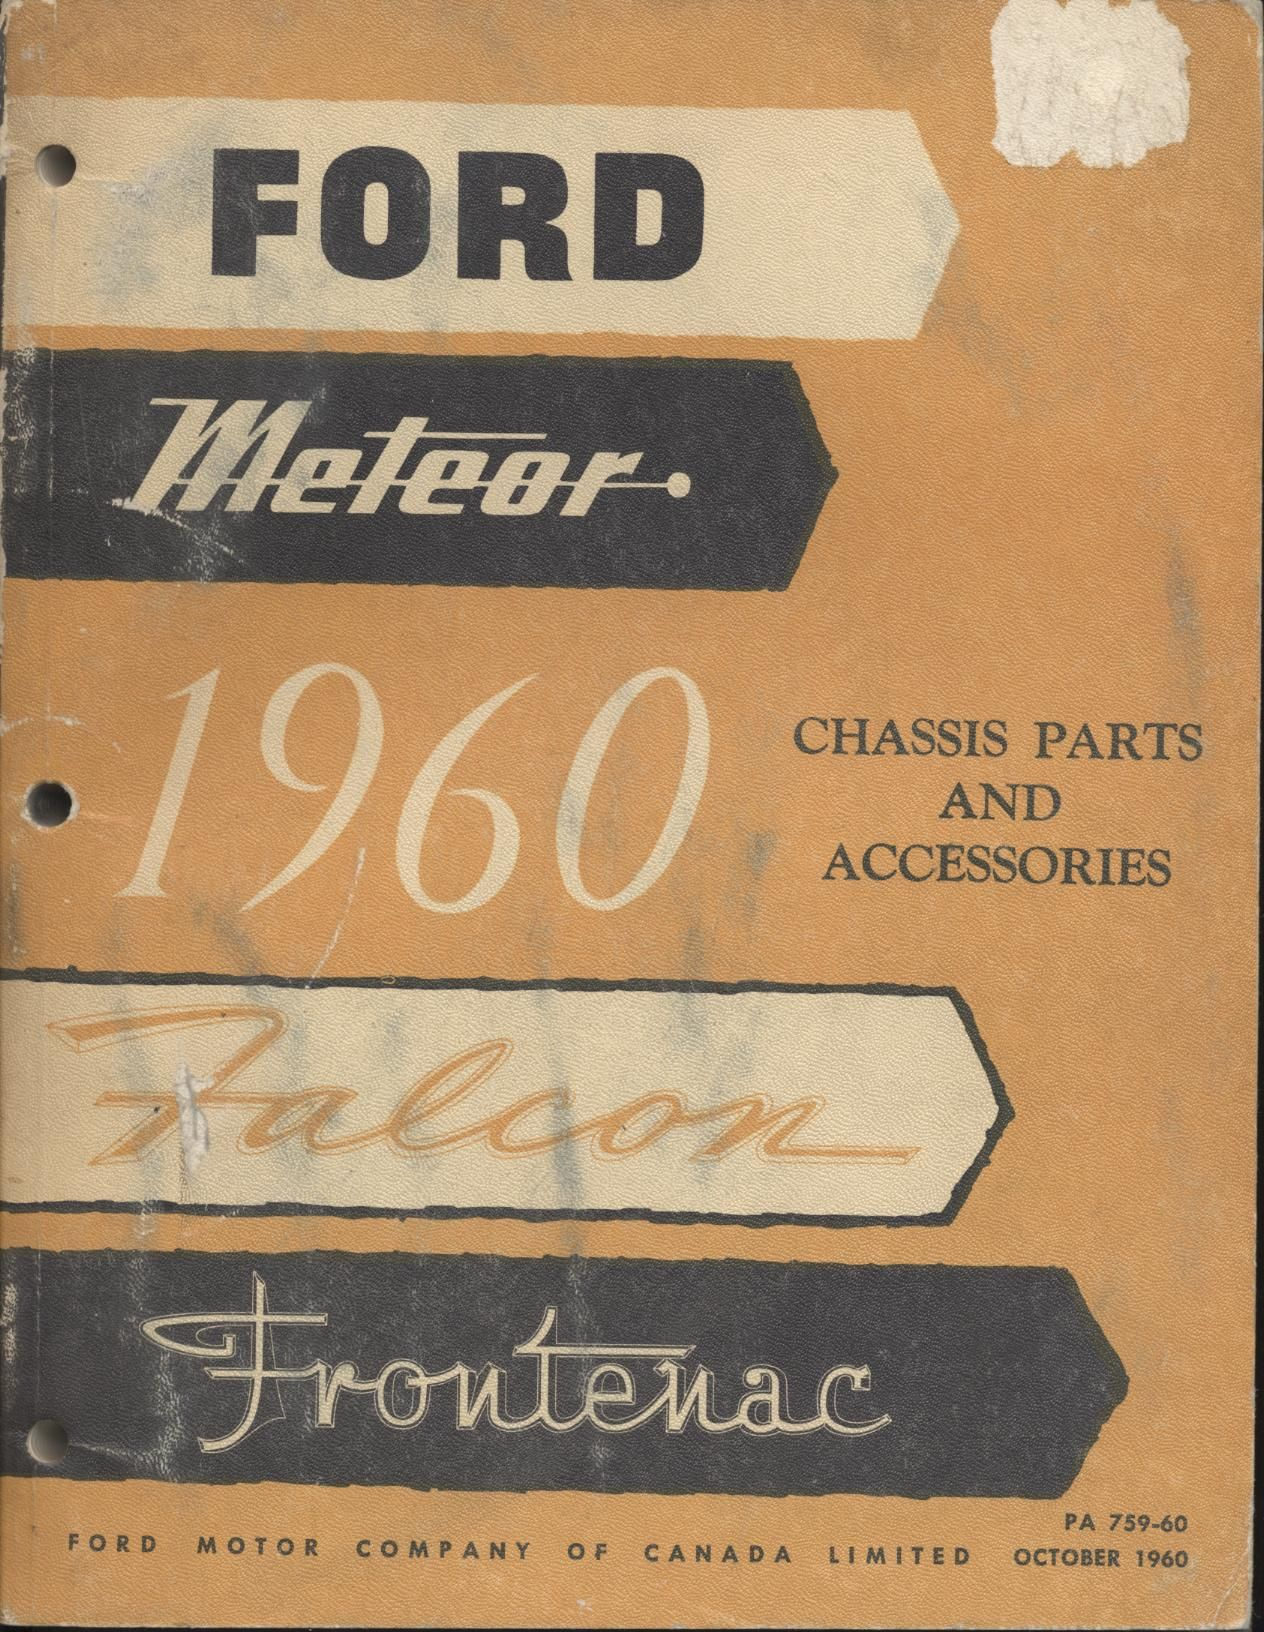 Ford Meteor Falcon Frontenac Chassis Parts And